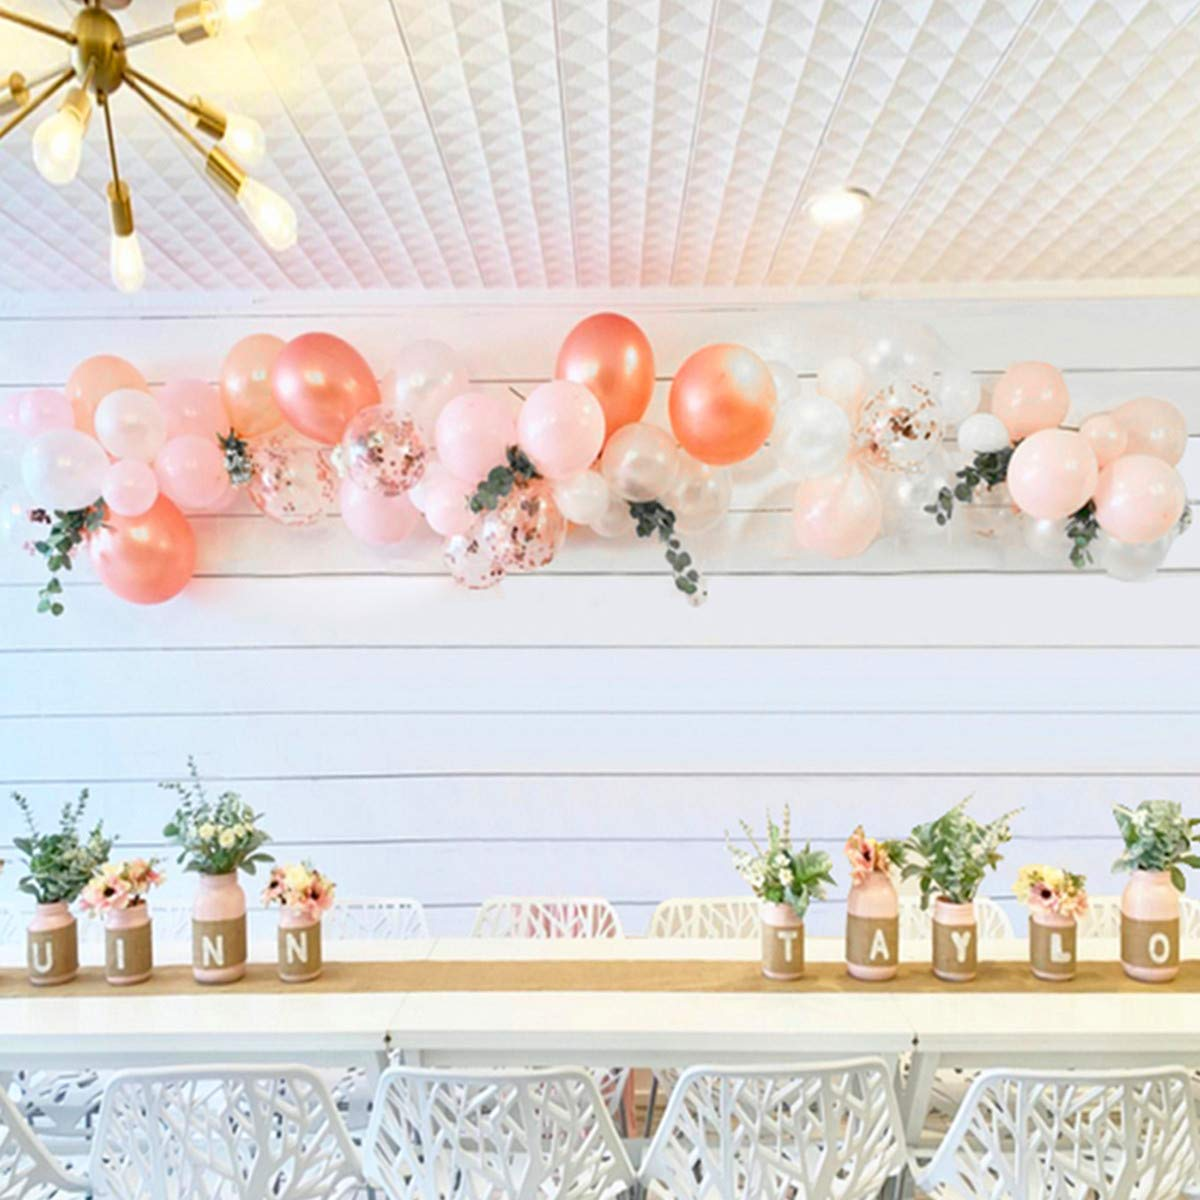 Balloon Arch & Garland Kit  100Pcs Rose Gold,Blush Pink &White Latex Party Balloons 16Ft Decorating Strip,Tying Tool,Glue Dots,Flower Clips  Wedding Birthday Baby Shower Bachelorette Party Decorations